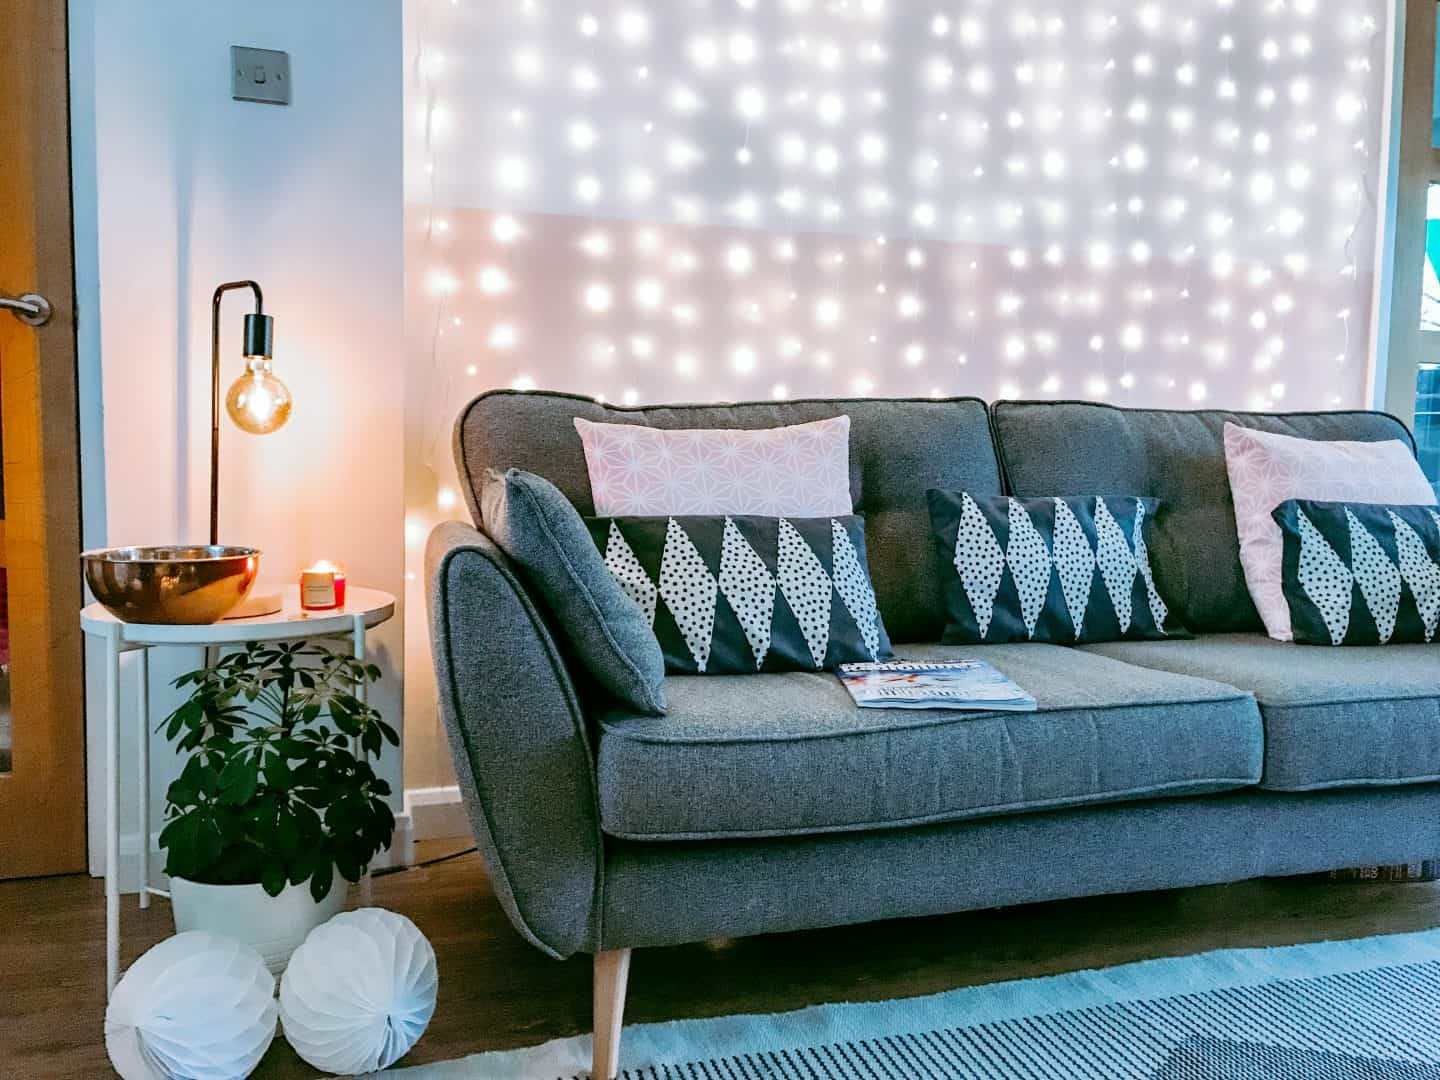 Grey sofa in front of LED curtain lights